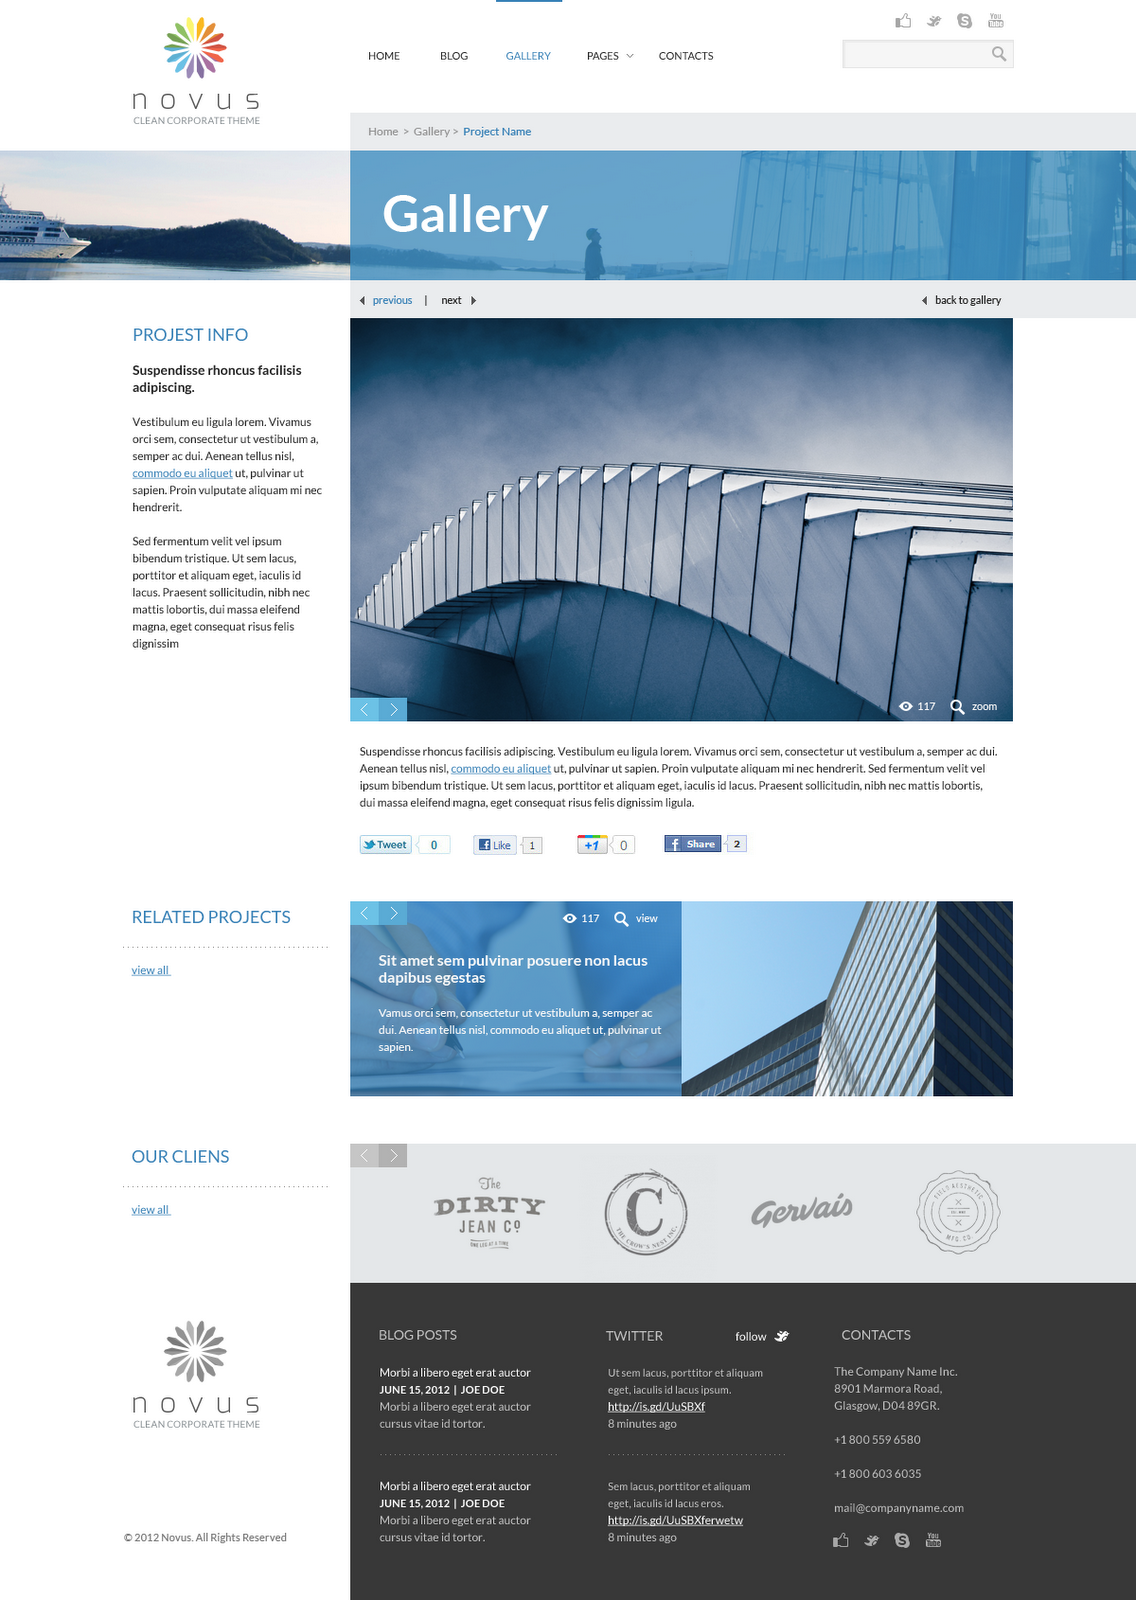 Novus-Multipurpose-Business-Wordpress-Template